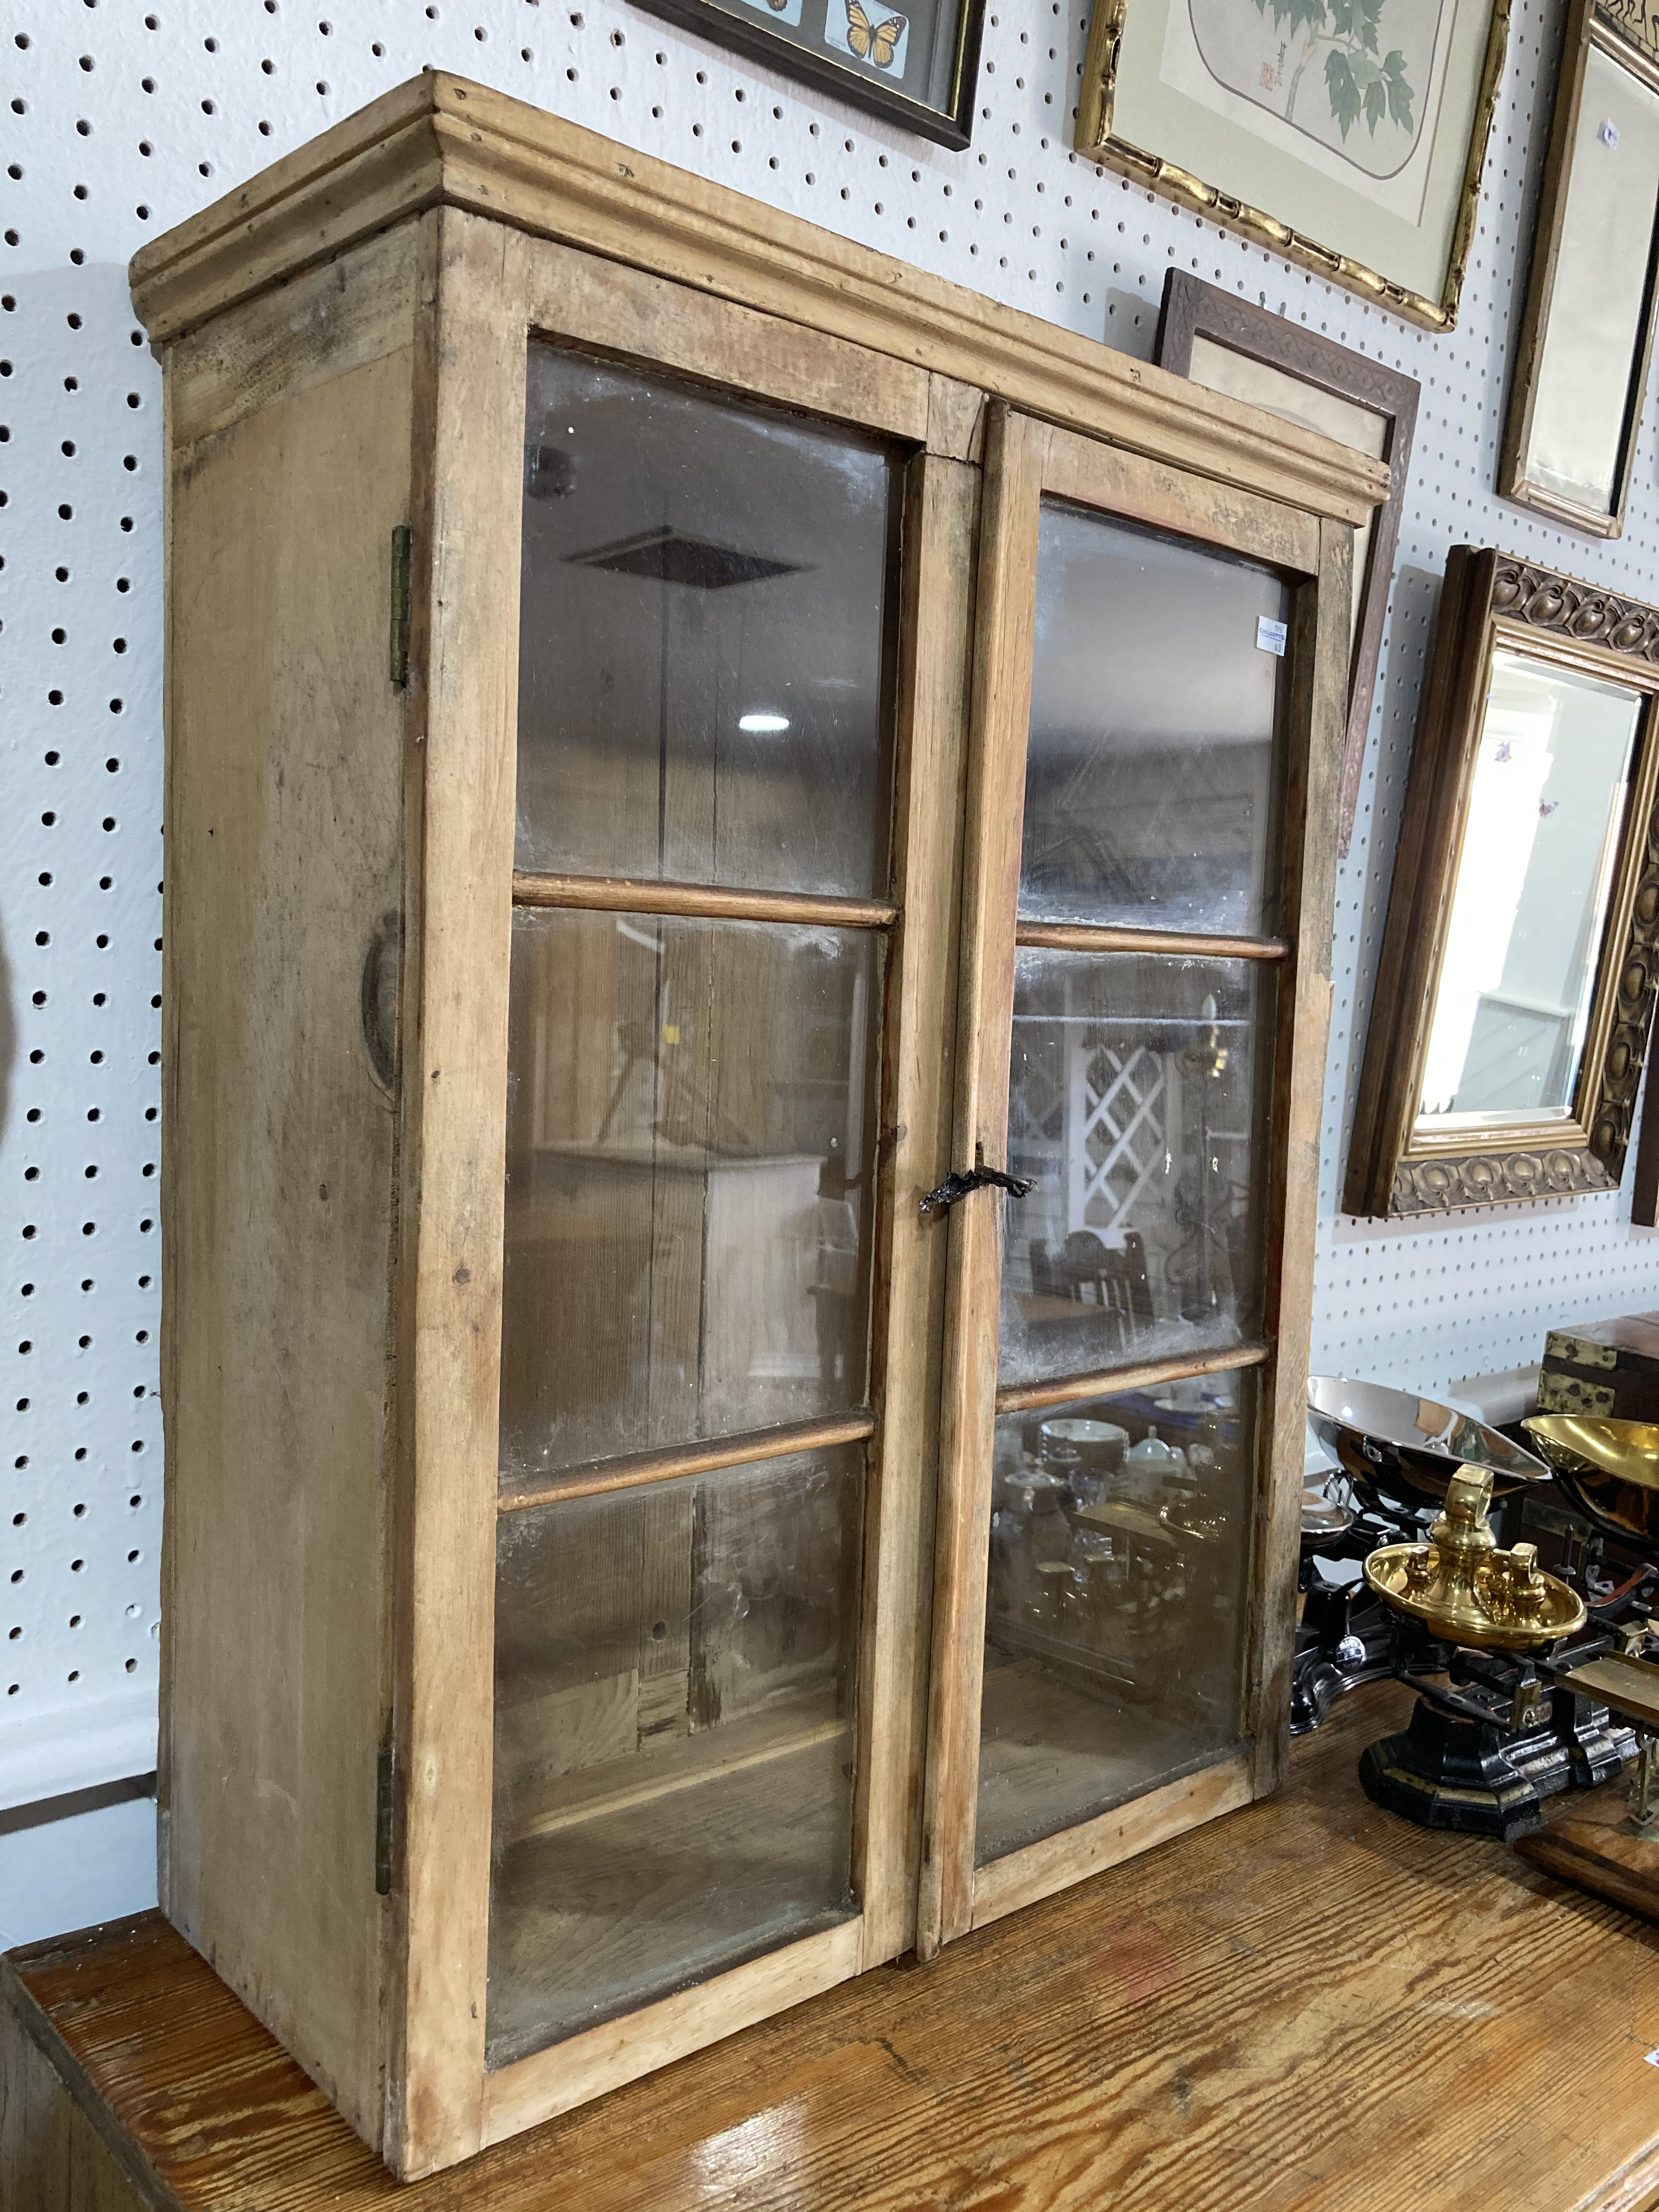 An early 20thC glazed pine Cabinet, 21½in wide x 9in deep x 28in high (55cm x 23cm x 71cm) - Image 2 of 2